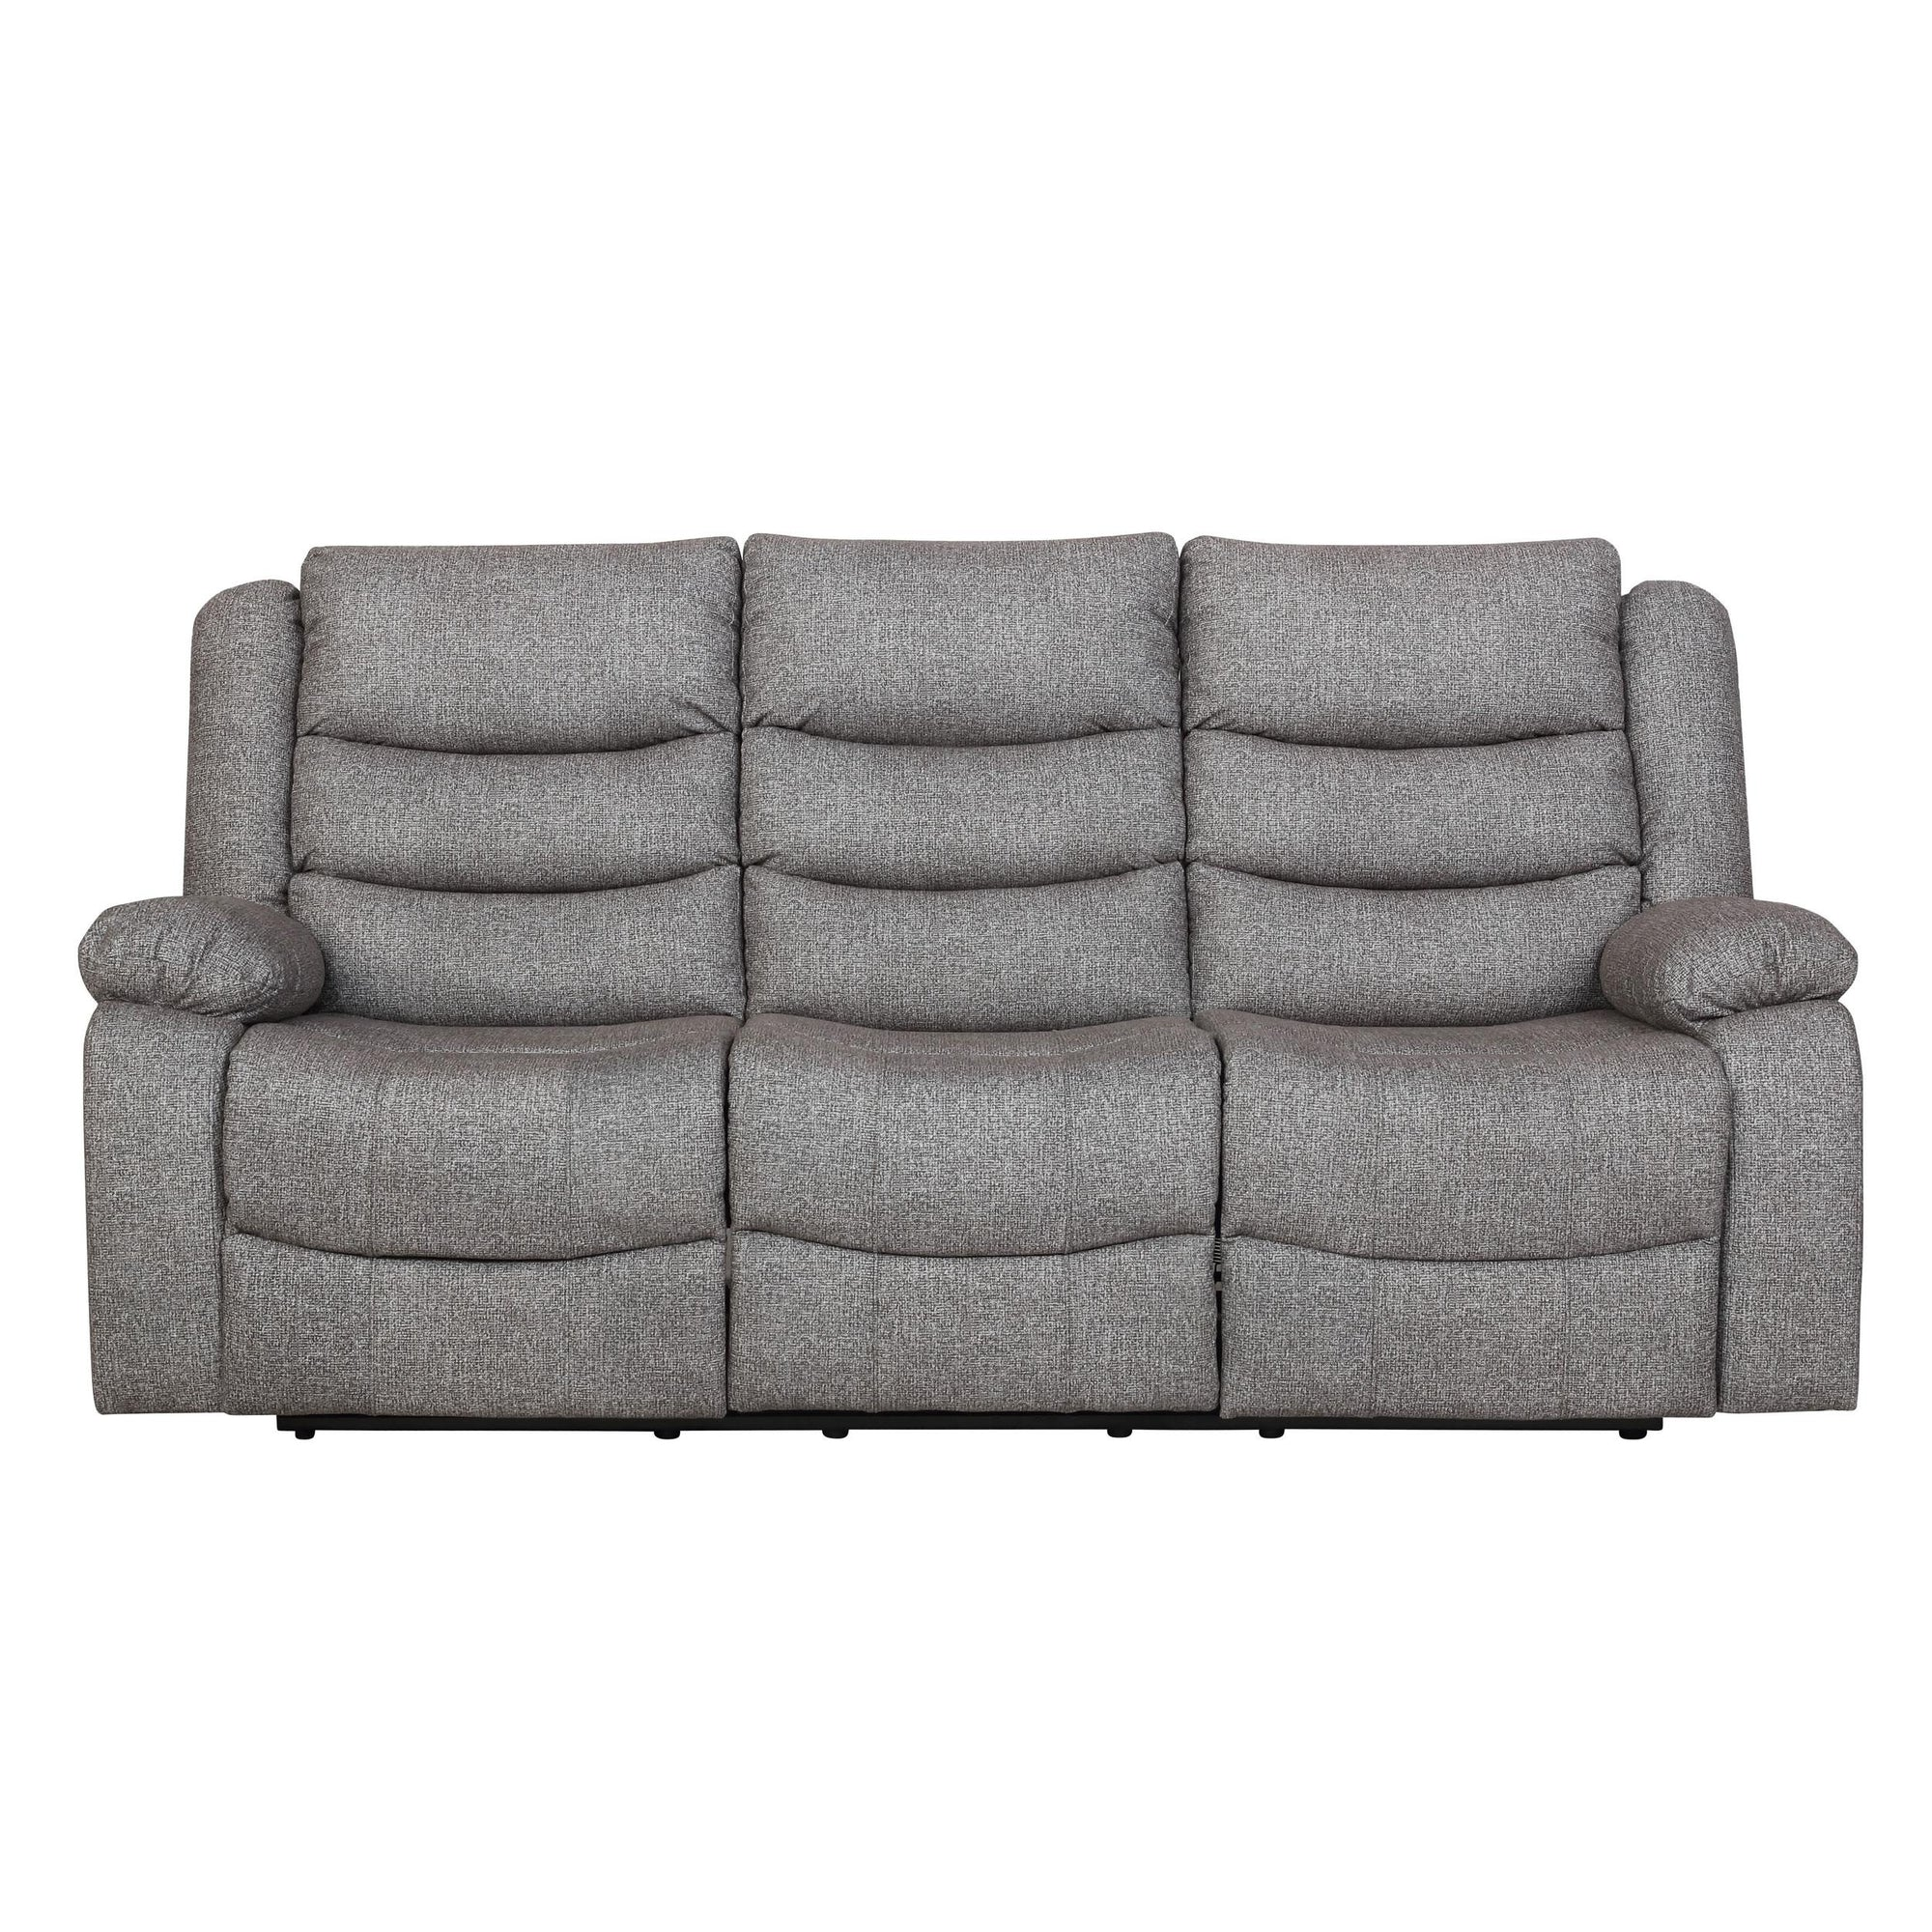 Granada Power Sofa